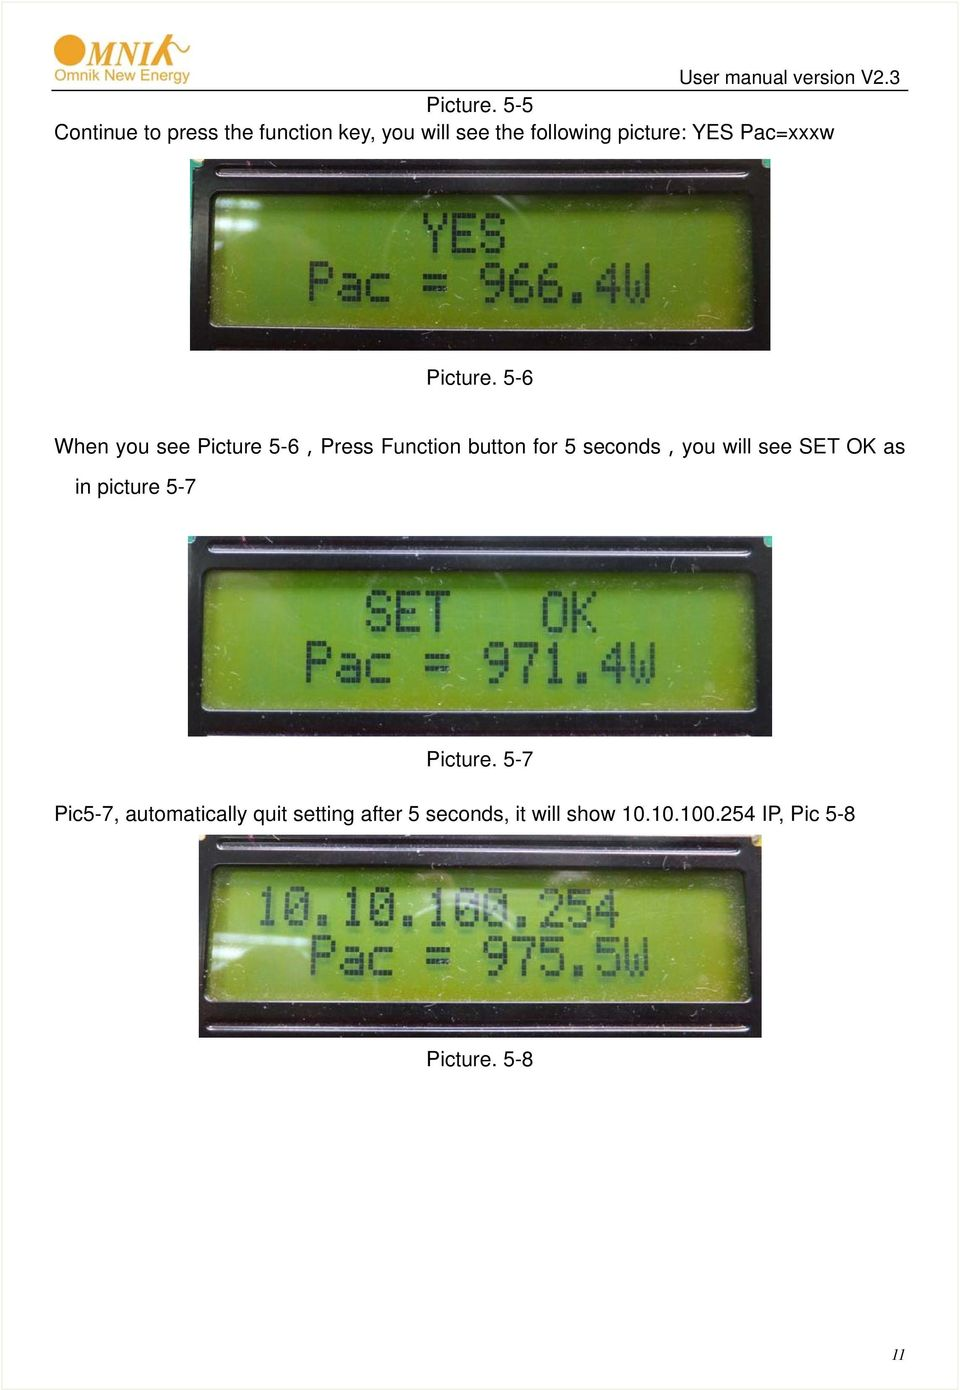 Pac=xxxw  5-6 When you see Picture 5-6,Press Function button for 5 seconds,you